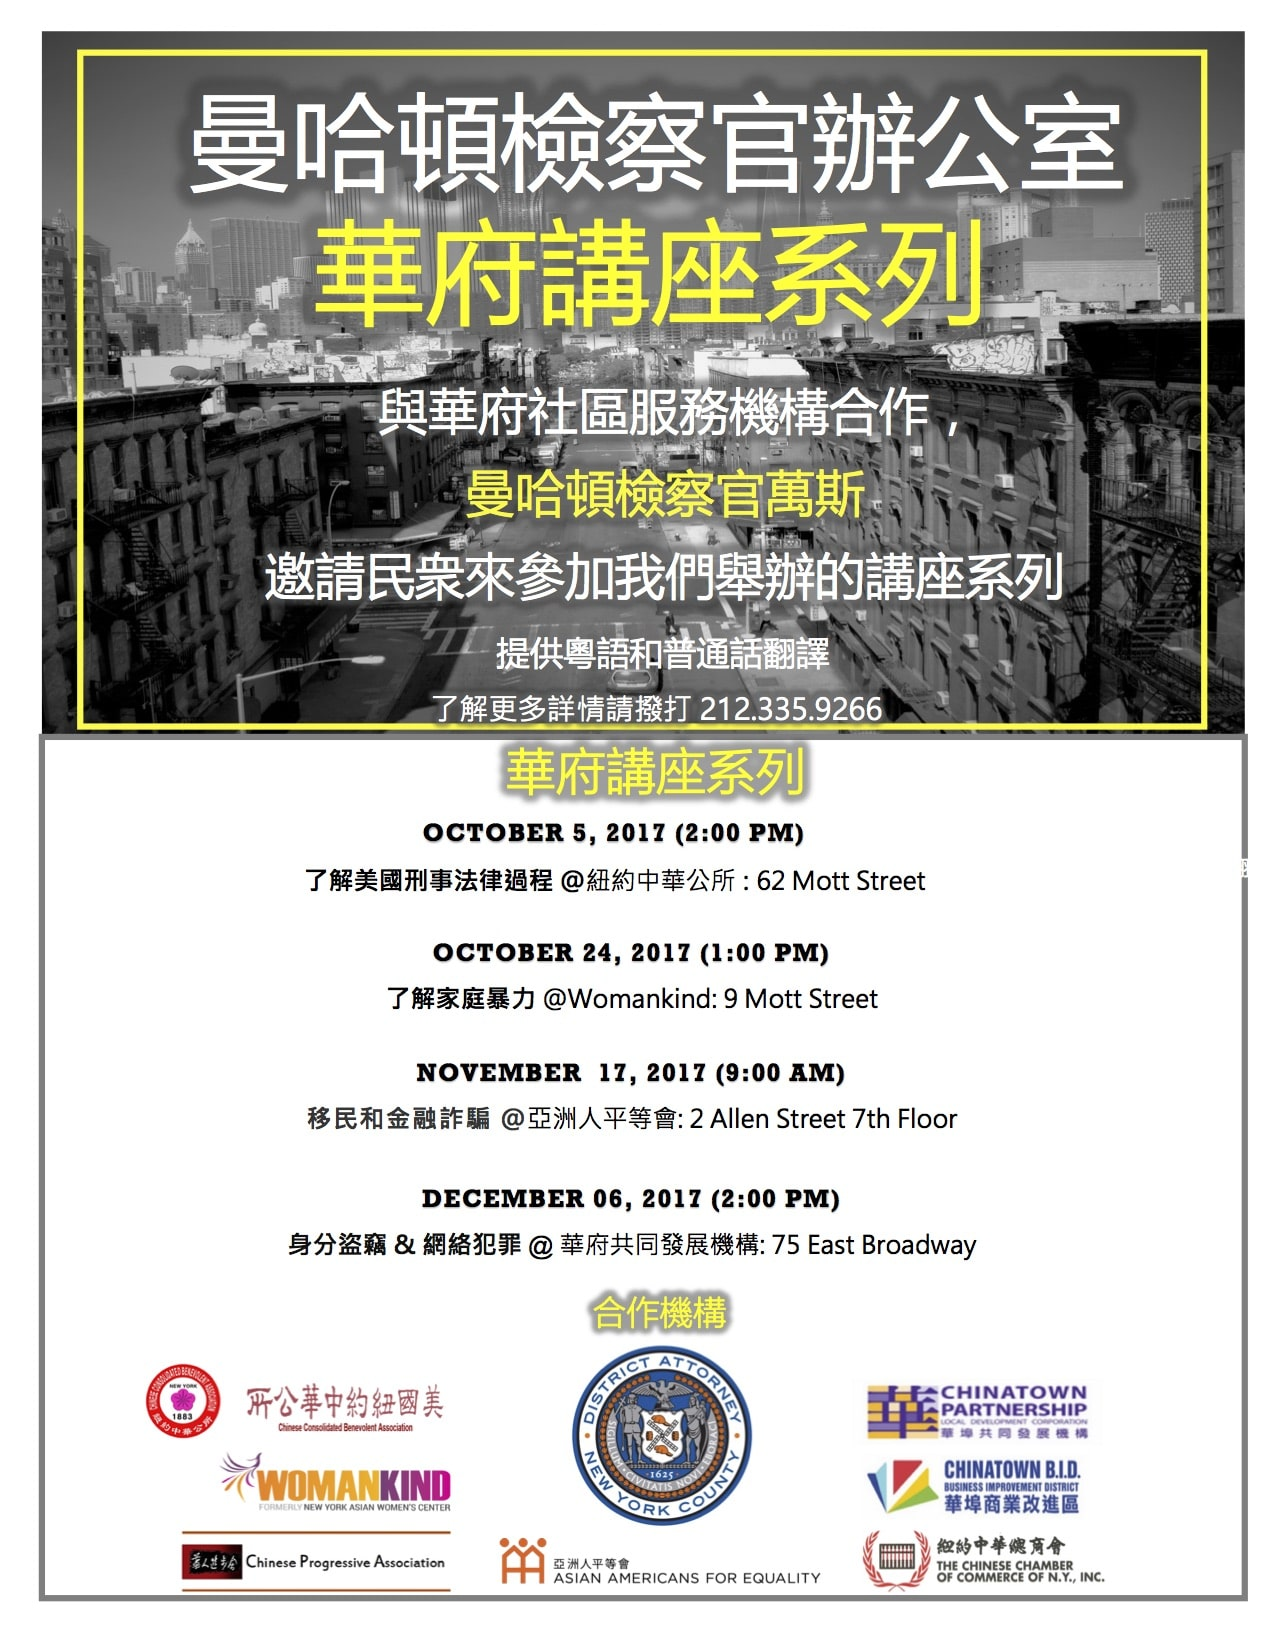 From Chinese Progressive Association: Free citizenship